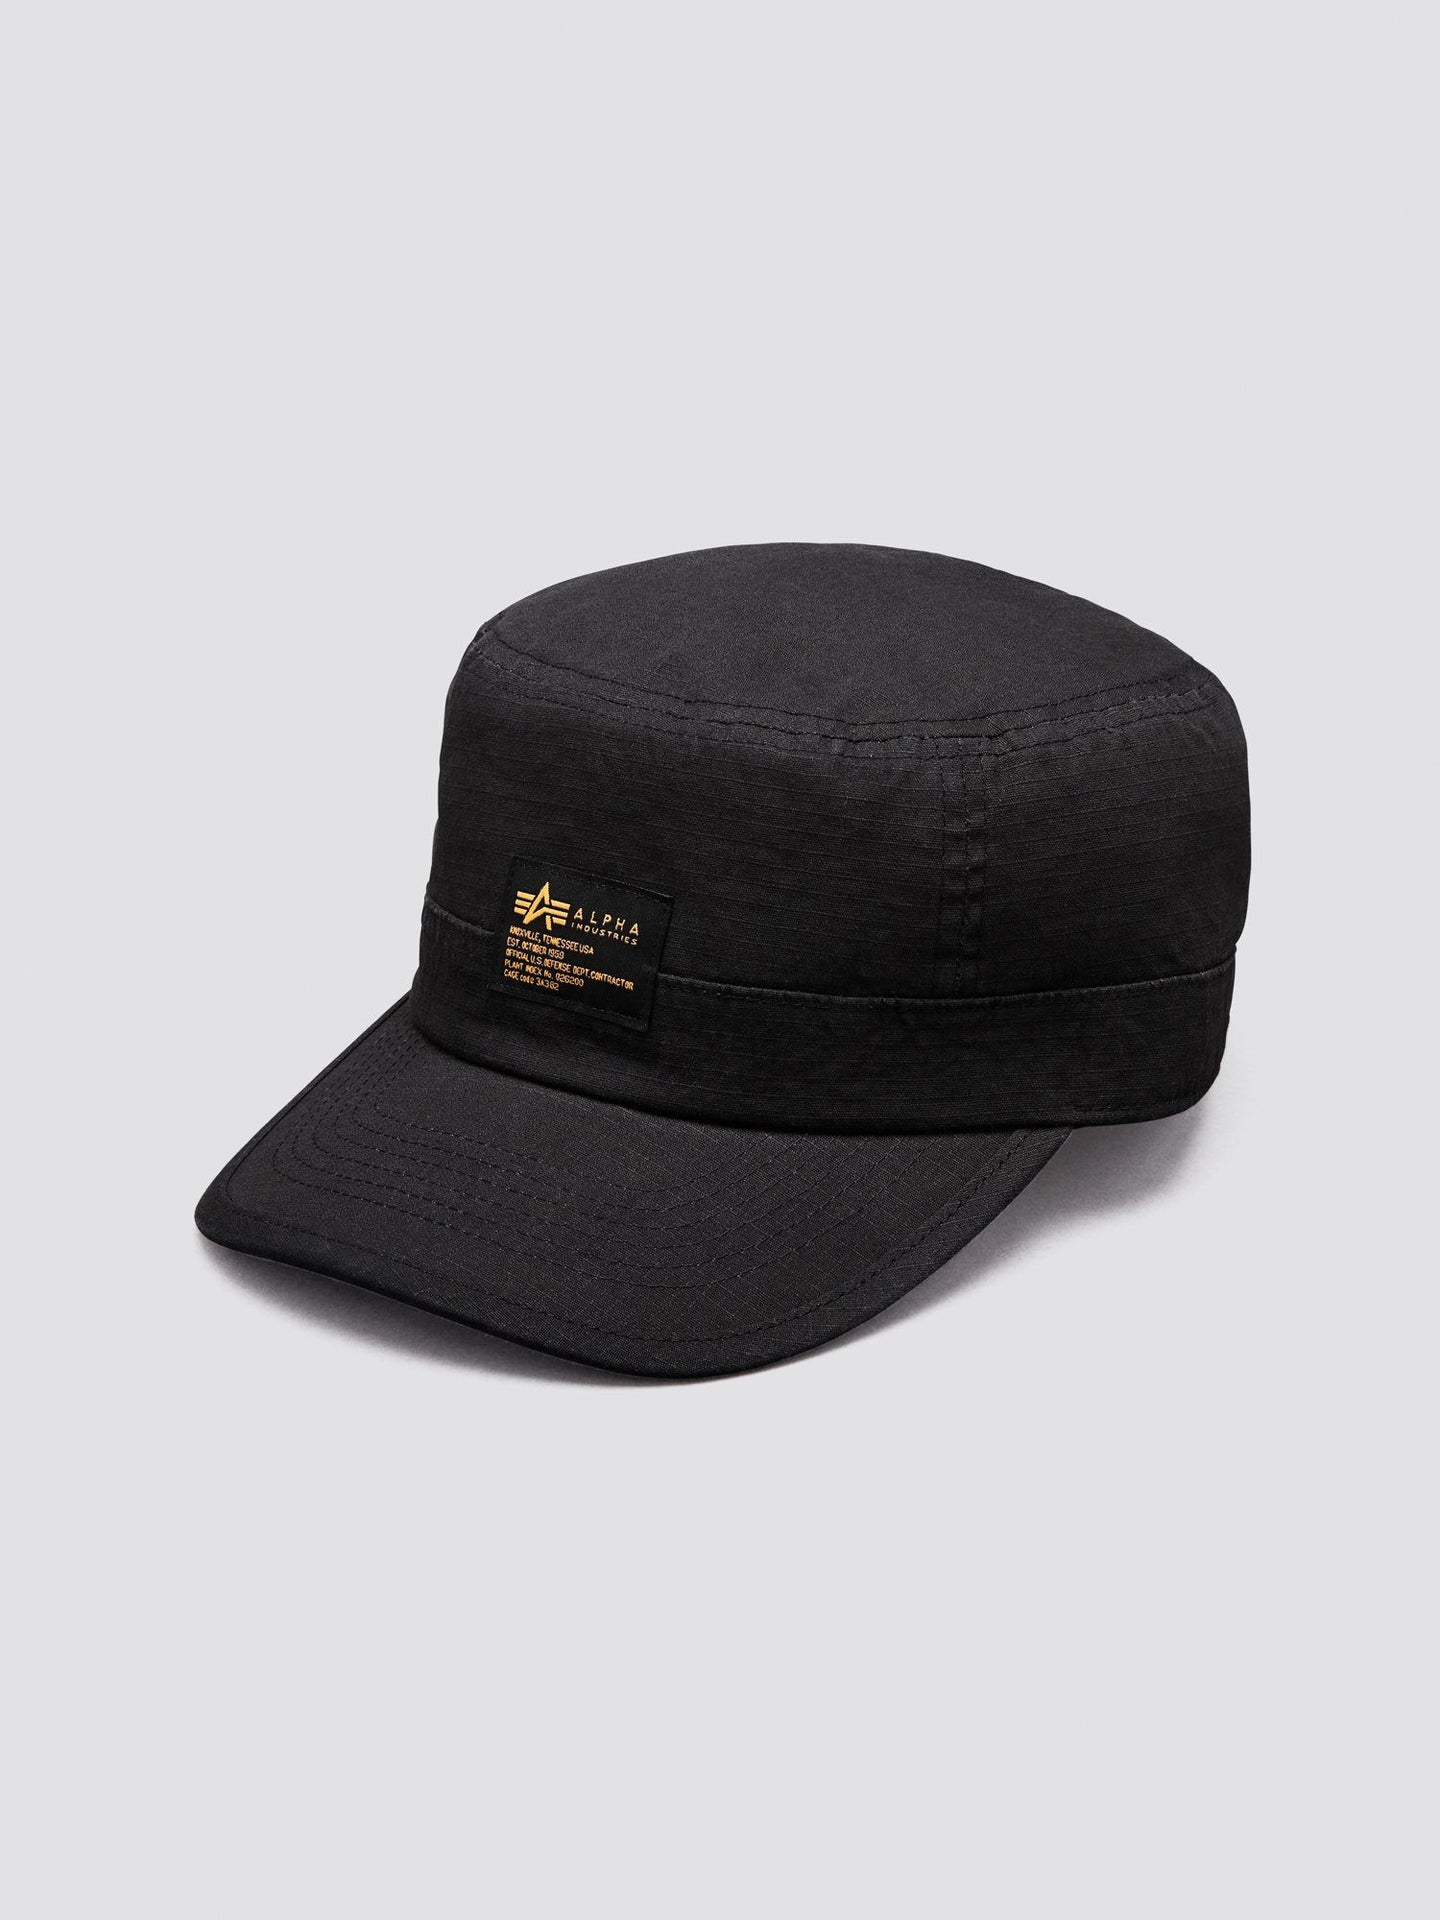 MILITARY FATIGUE CAP ACCESSORY Alpha Industries, Inc. BLACK O/S